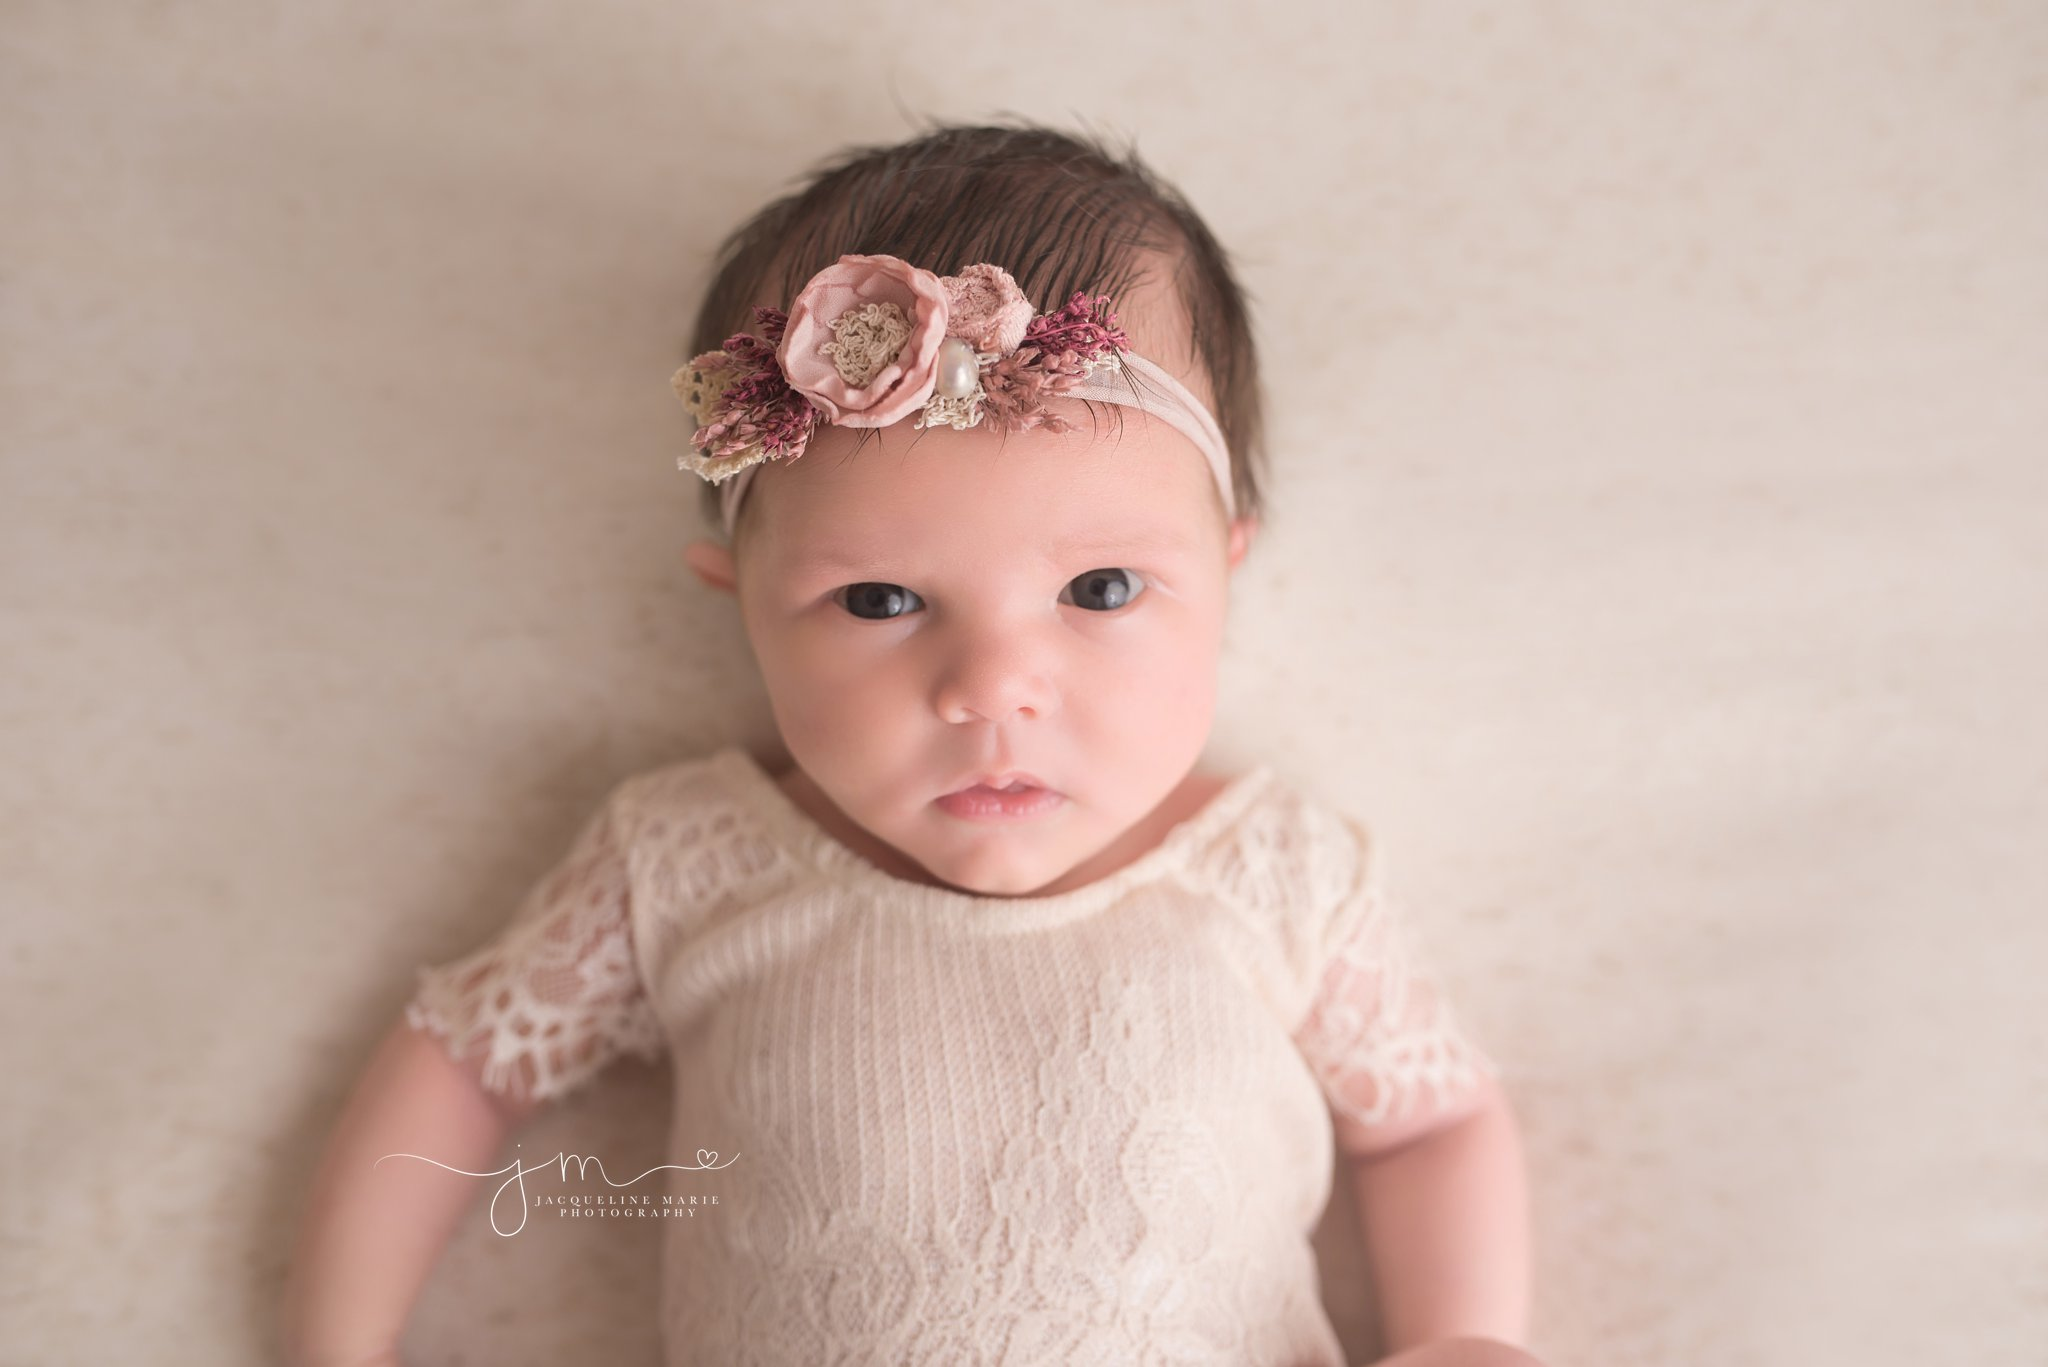 newborn baby girl in Columbus Ohio wears headband for awake newborn pictures